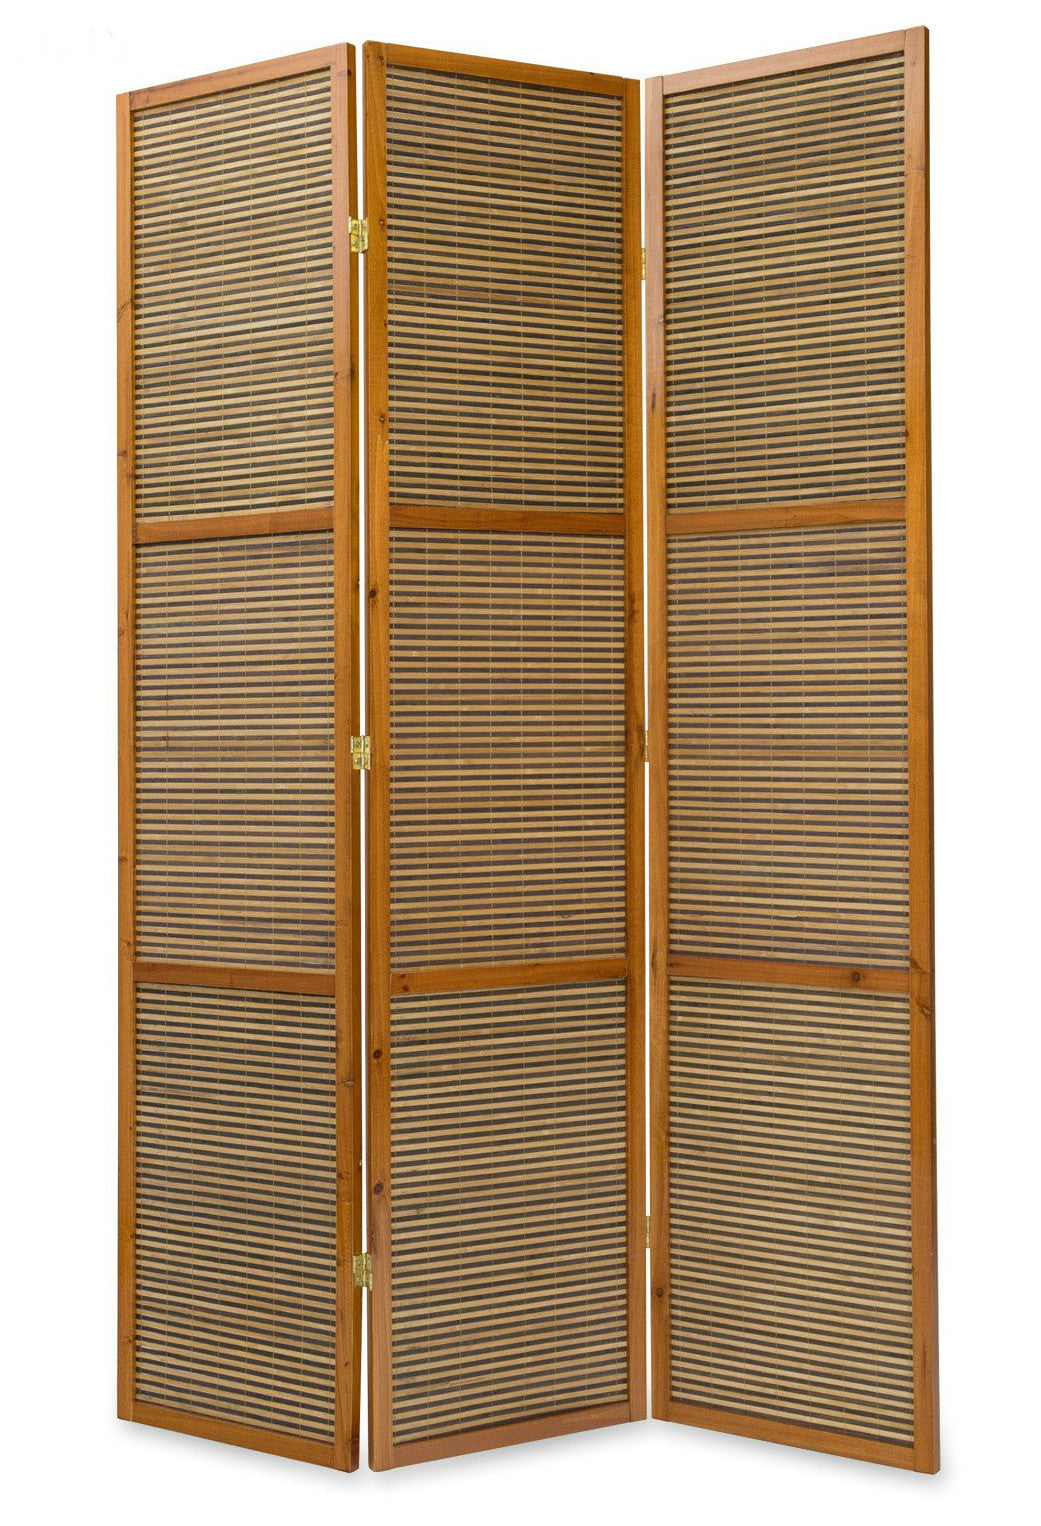 Bamboo Room Divider - 2 Meter Tall - 3 Panel